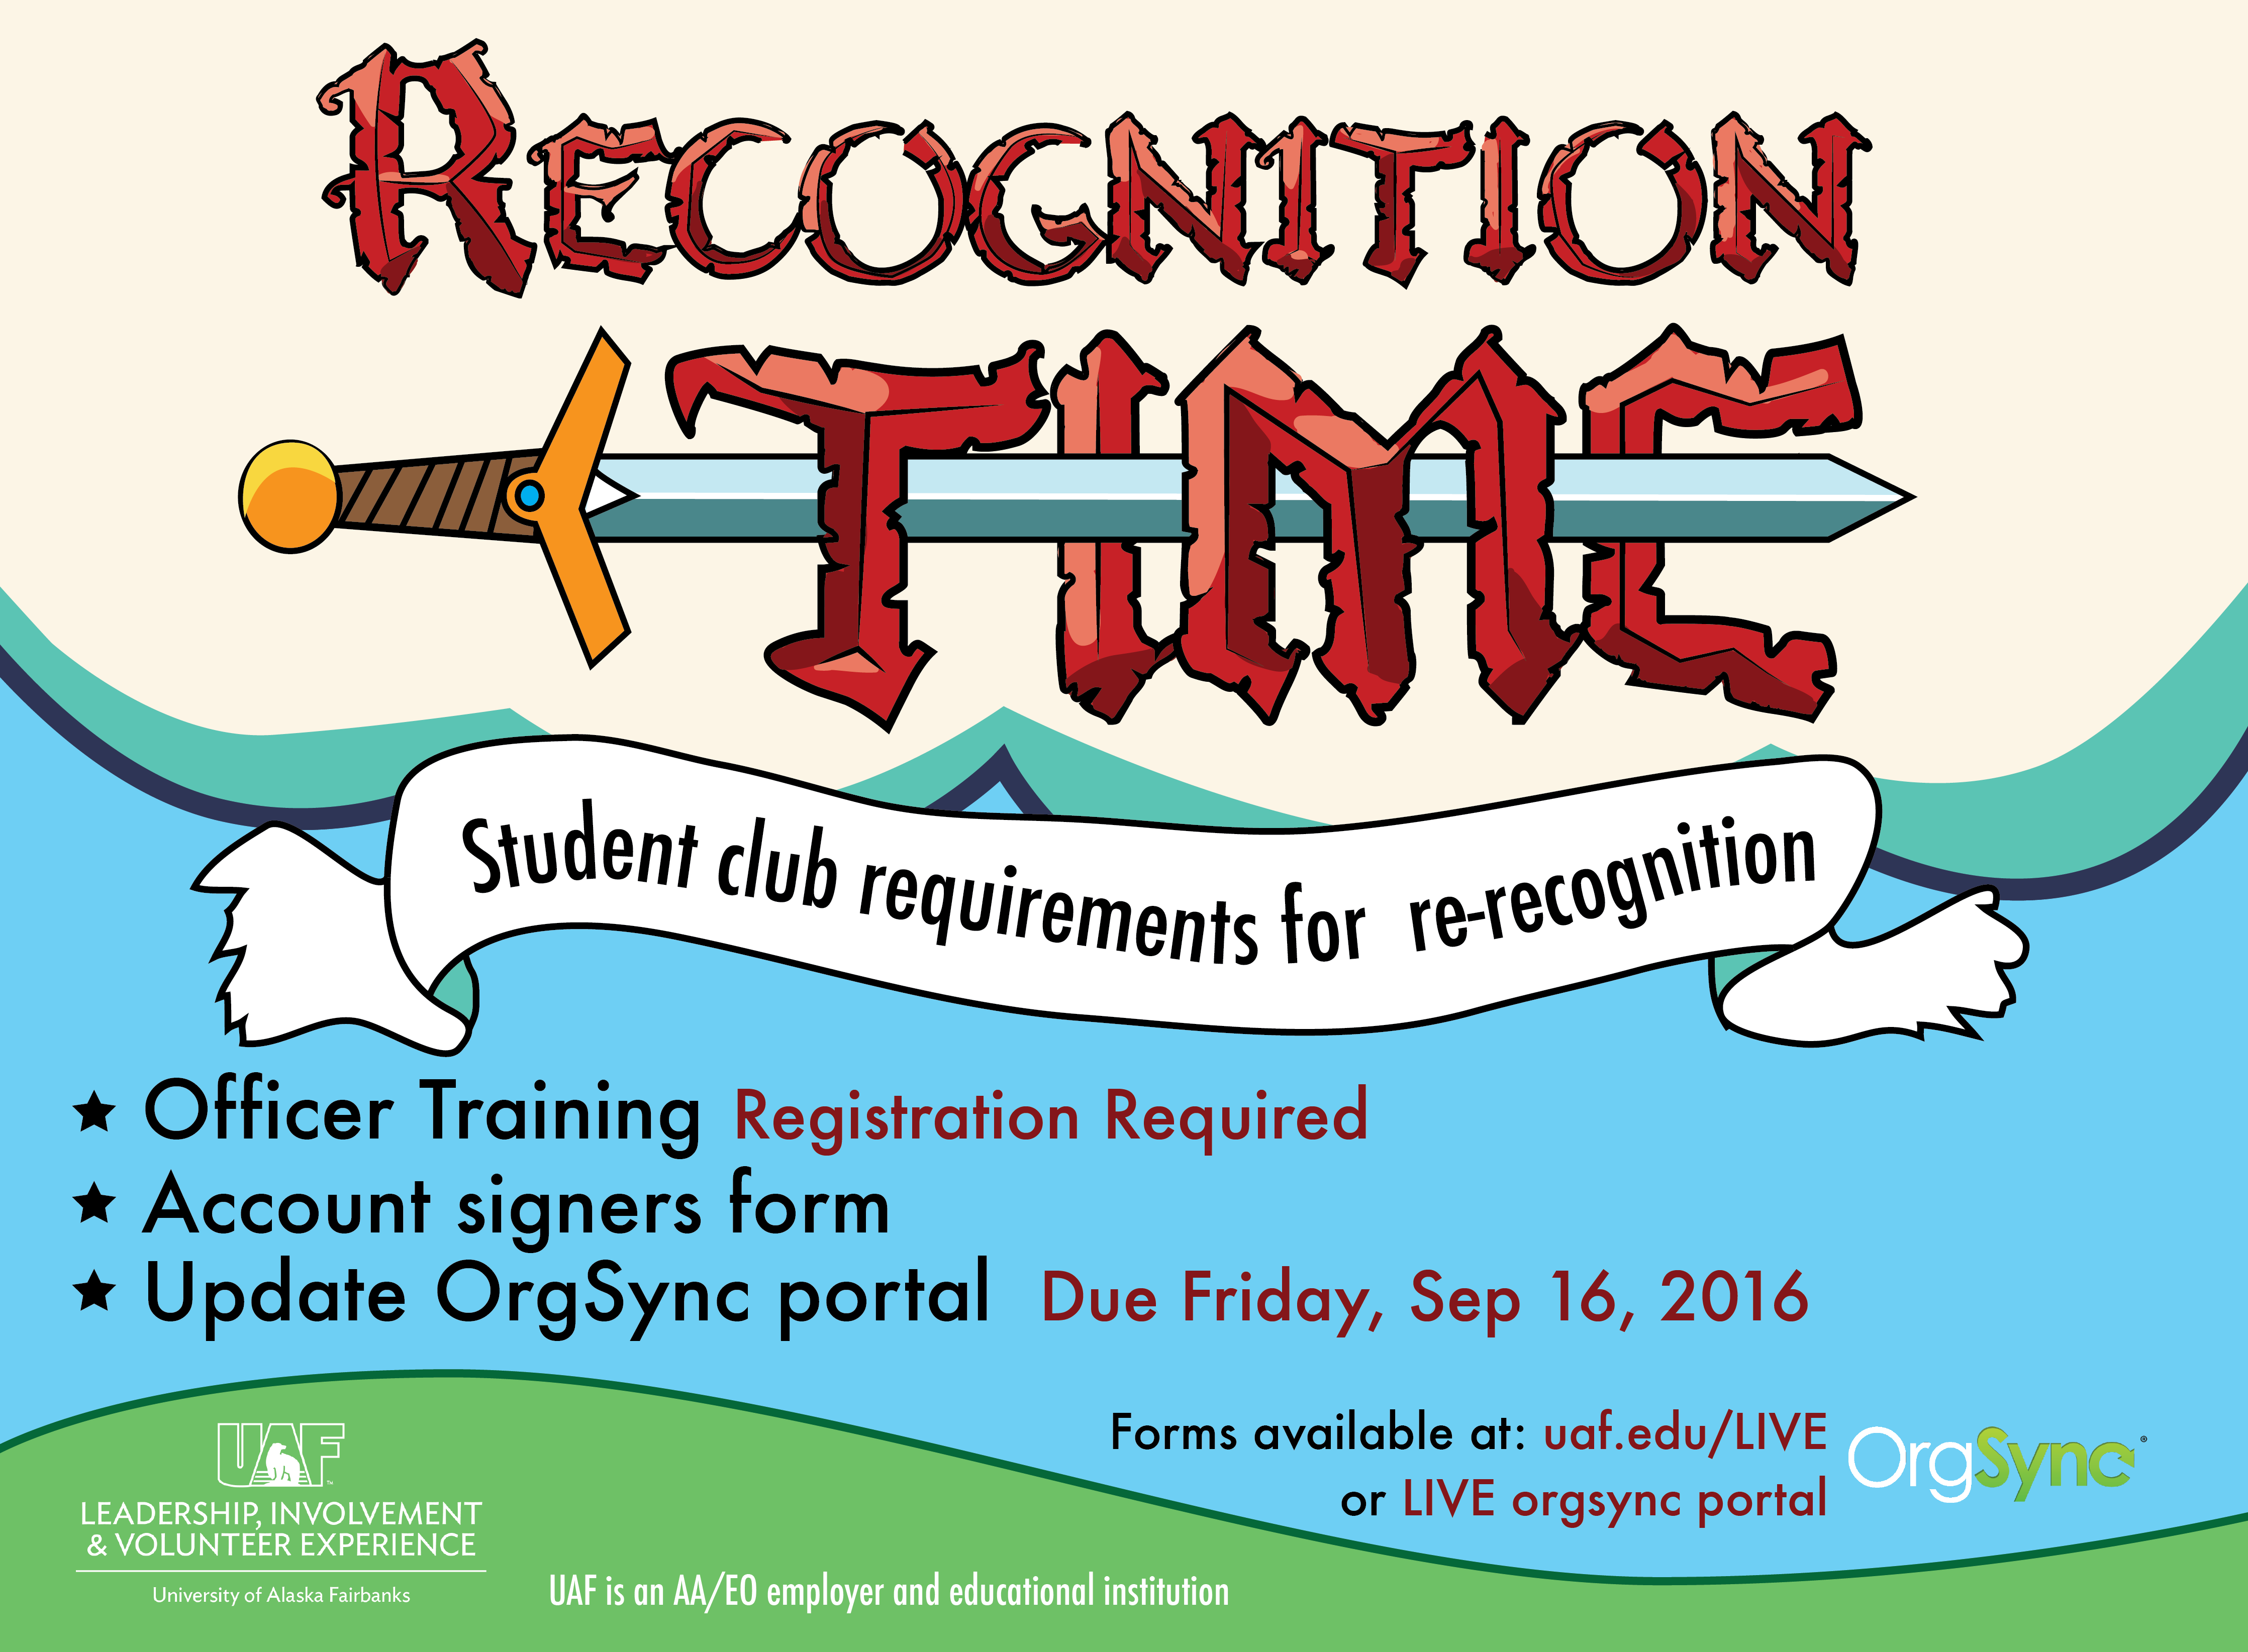 Student club re-recognition requirements - Officer training, account signers form, update OrgSync portal